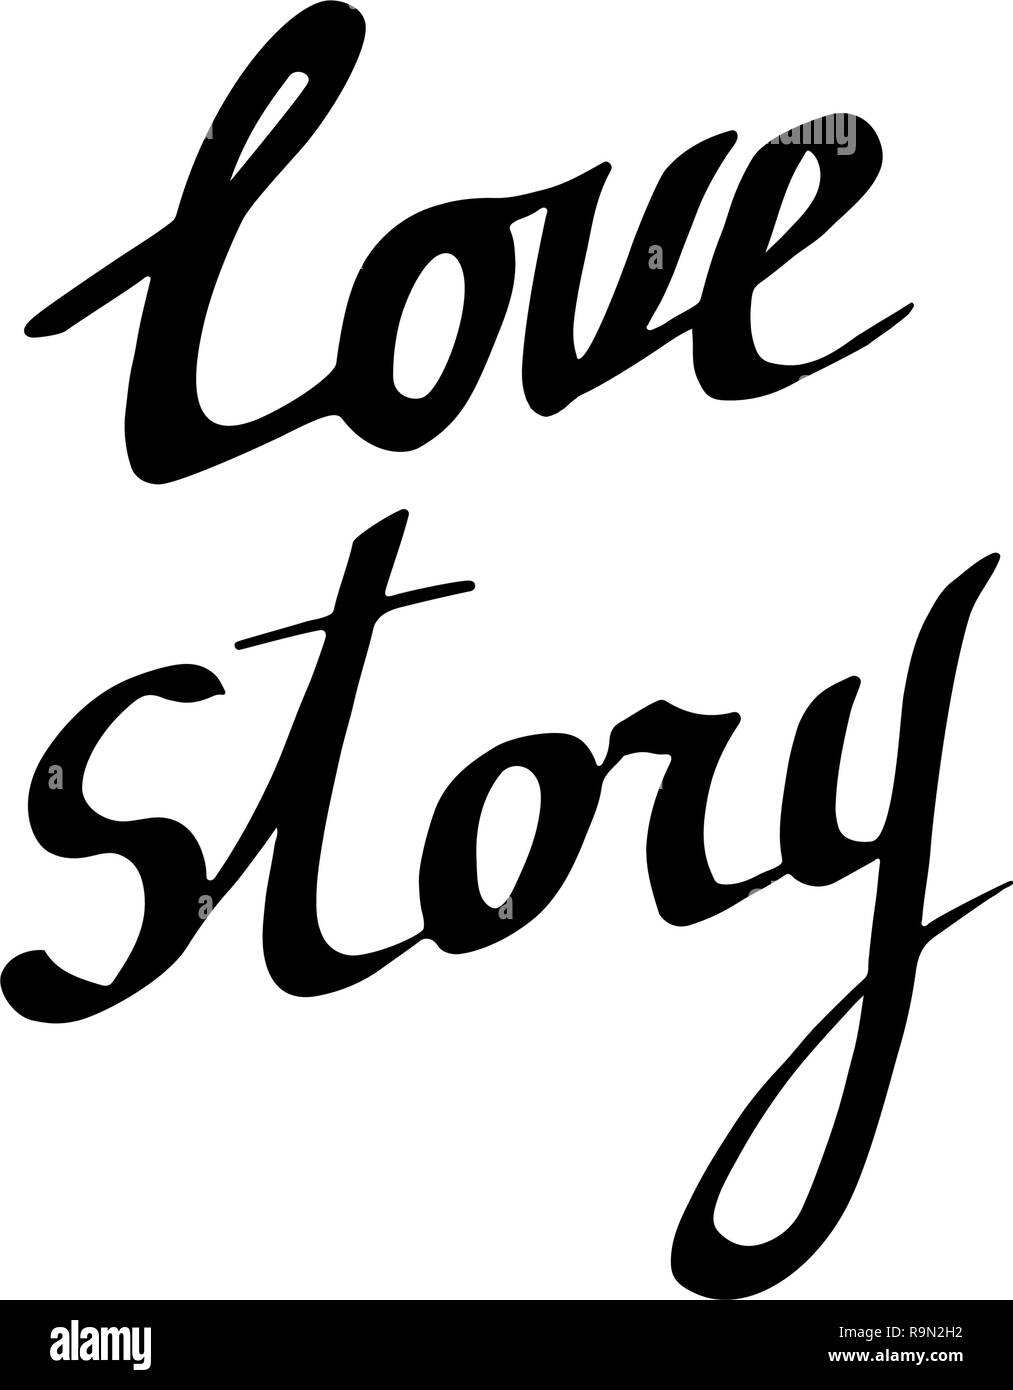 Vector Love story handwriting calligraphy. Isolated text illustration element. Black and white engraved ink art. - Stock Image